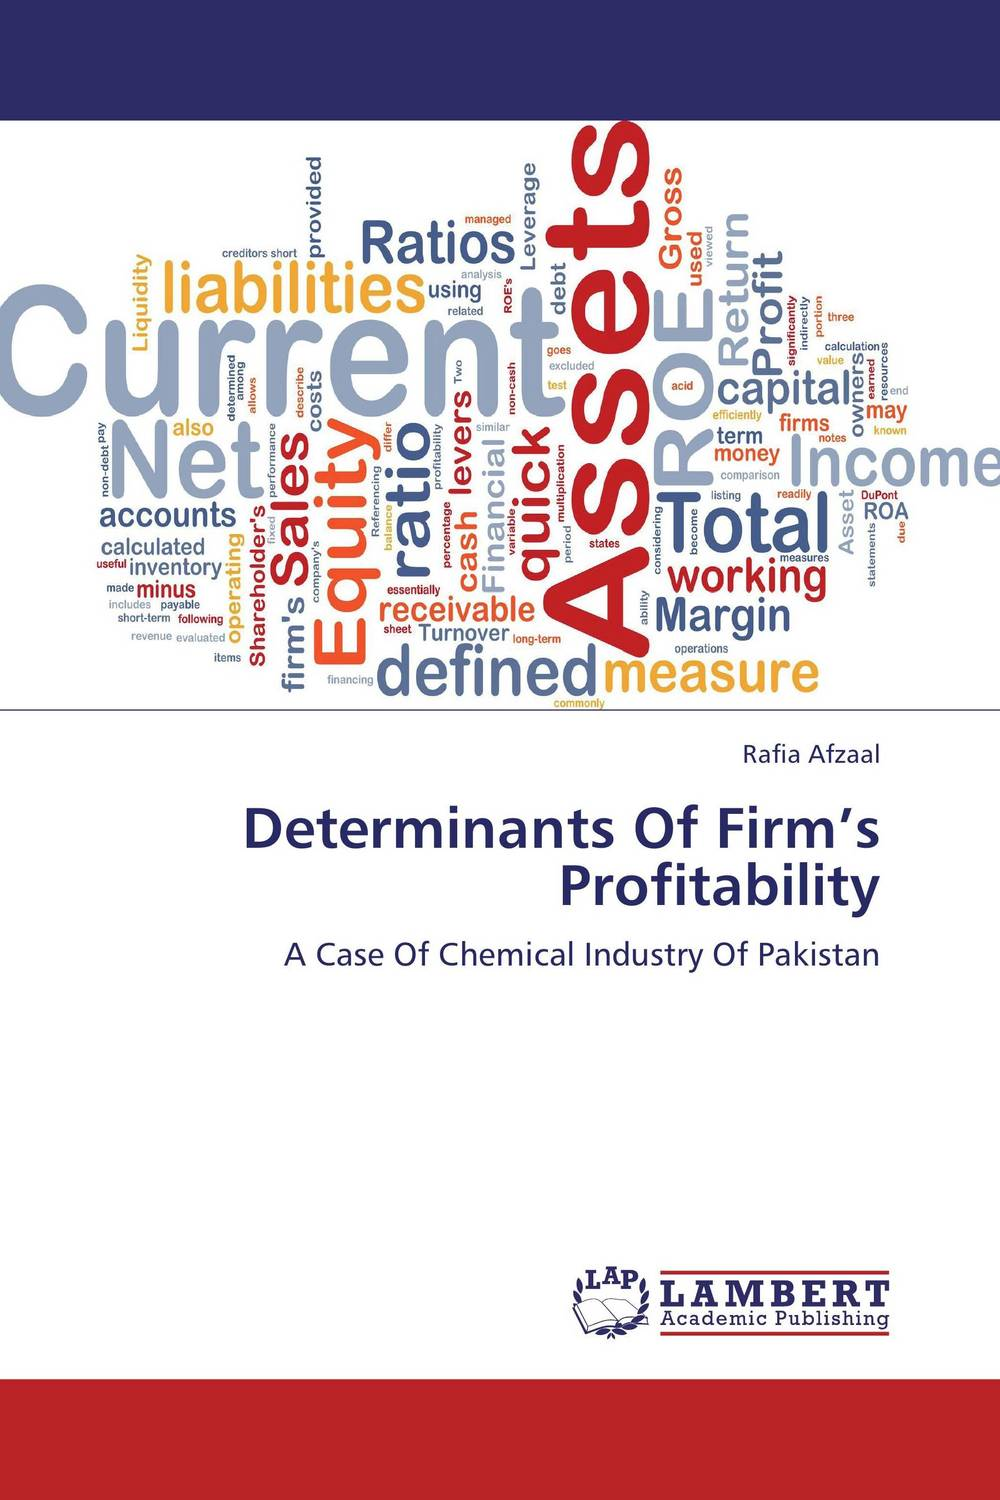 Determinants Of Firm's Profitability the firm